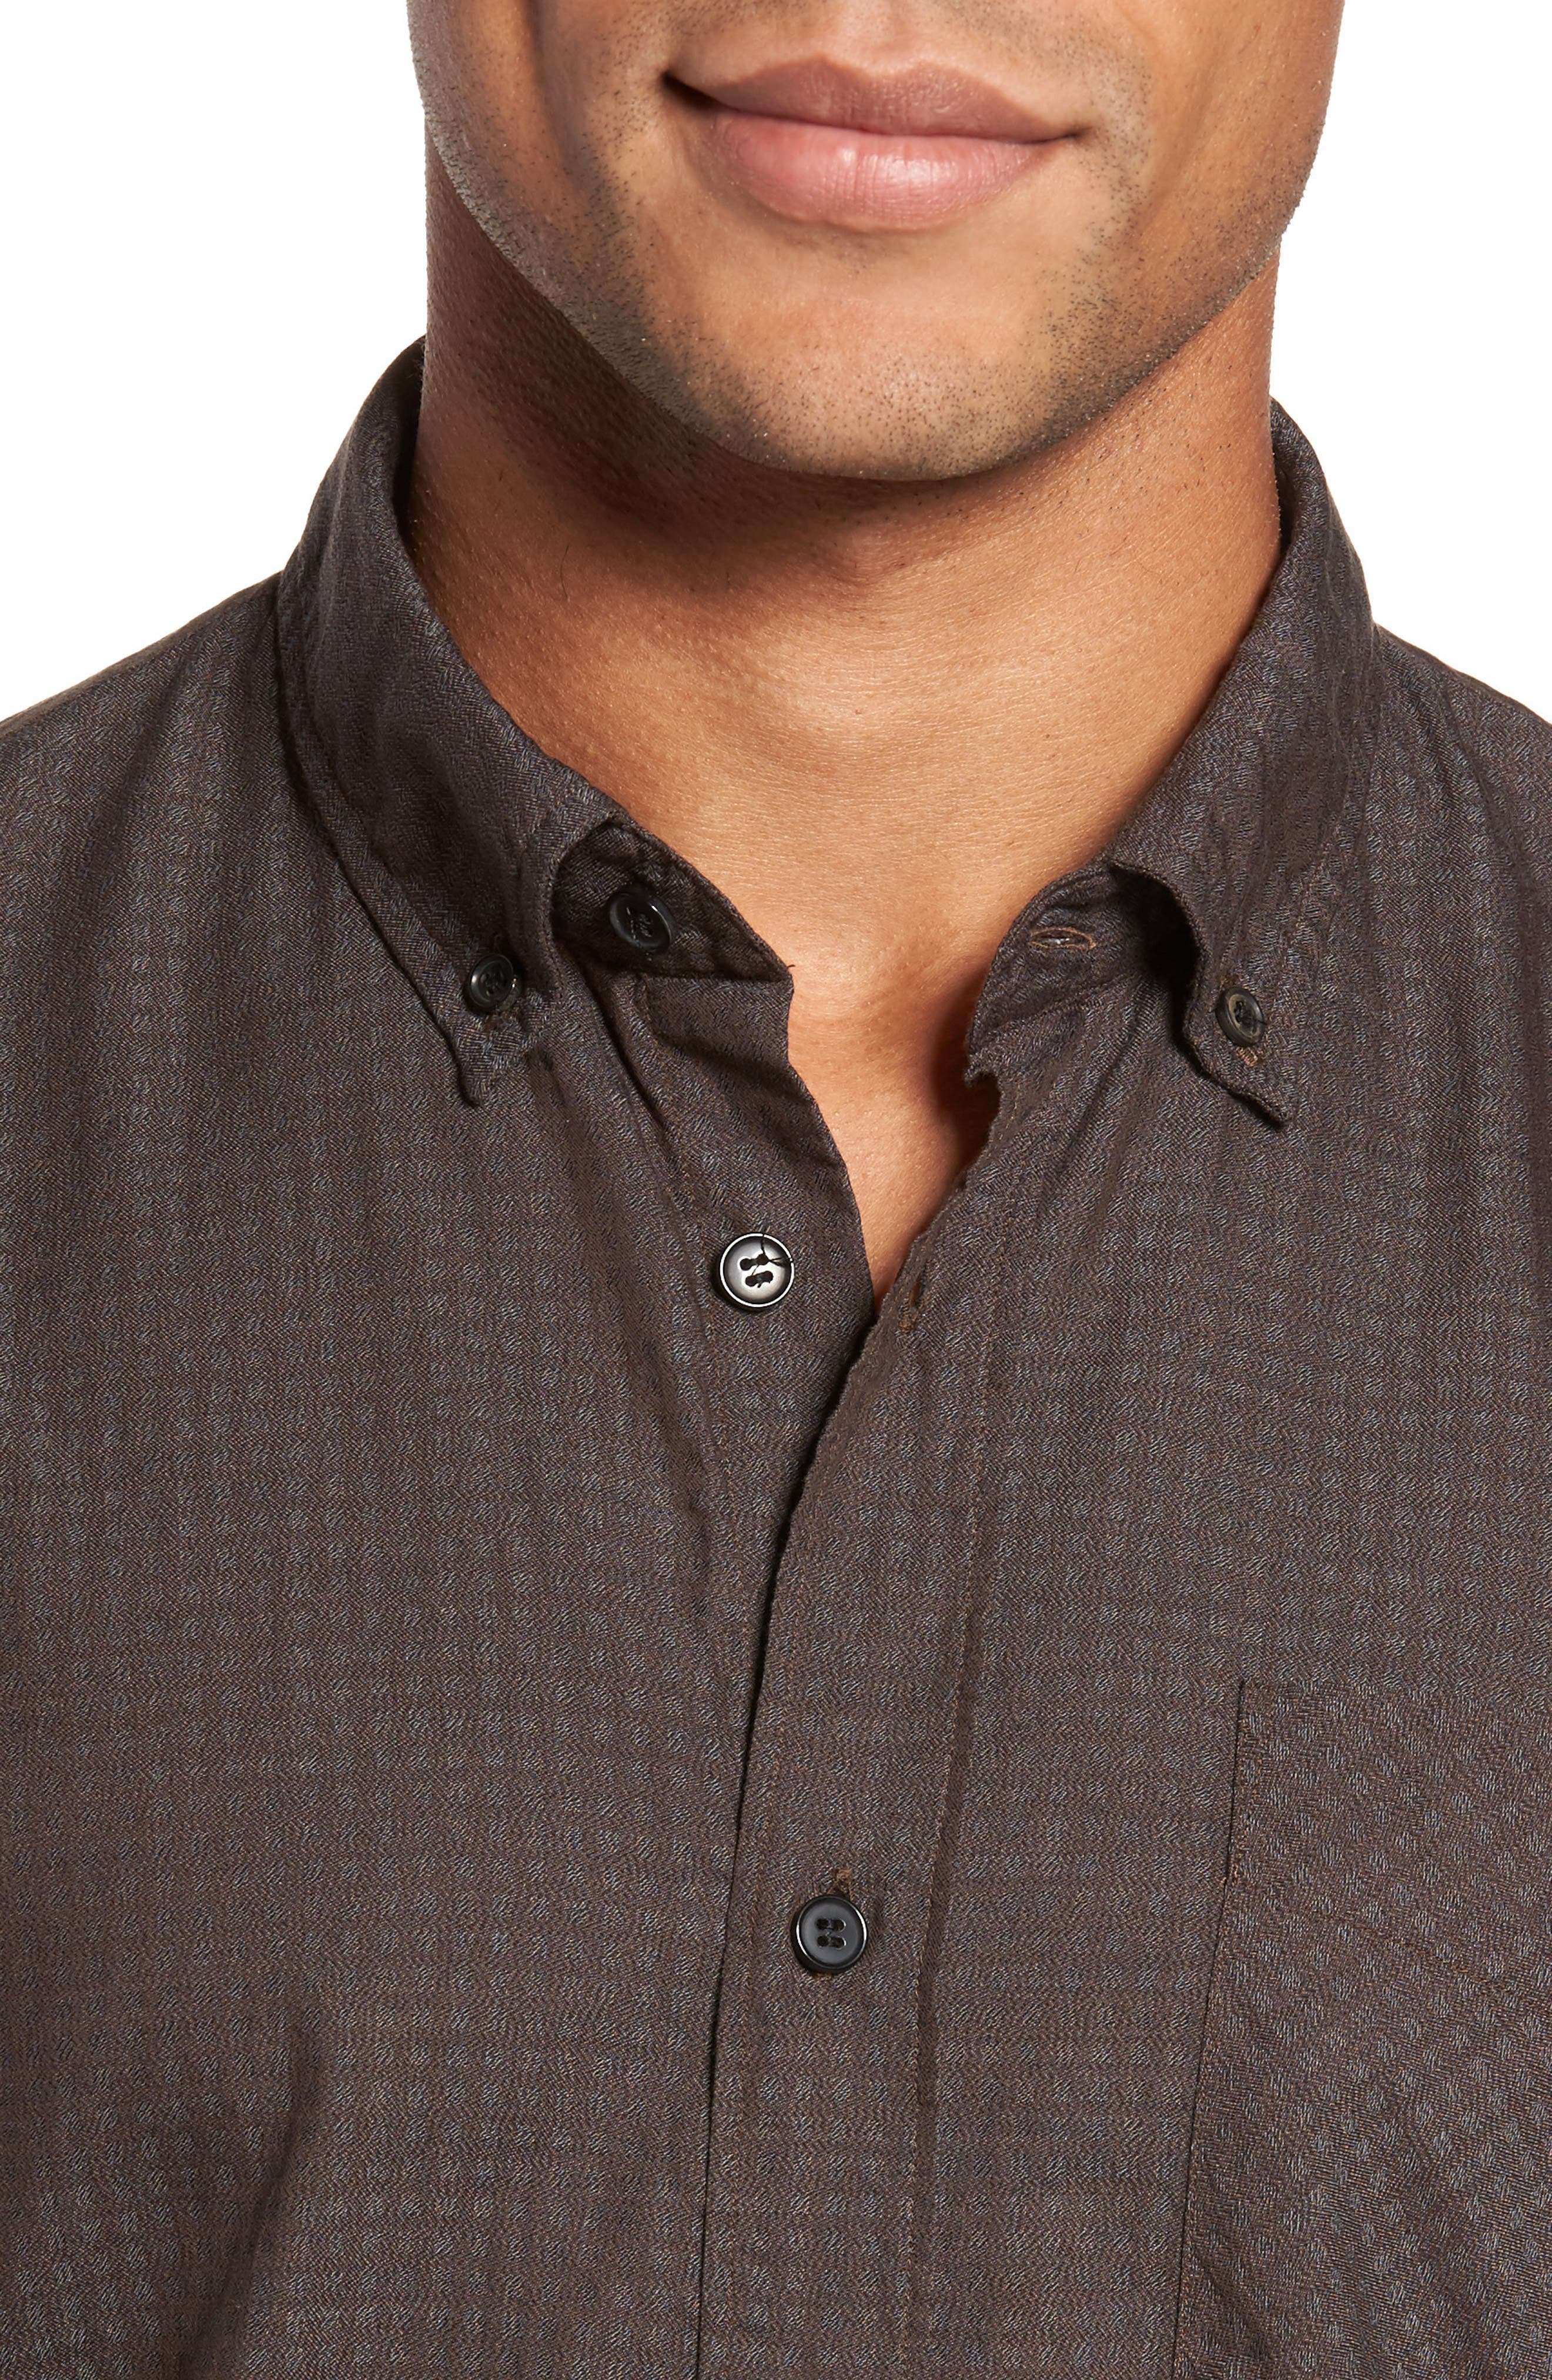 Wallace Slim Fit Sport Shirt,                             Alternate thumbnail 4, color,                             Brown